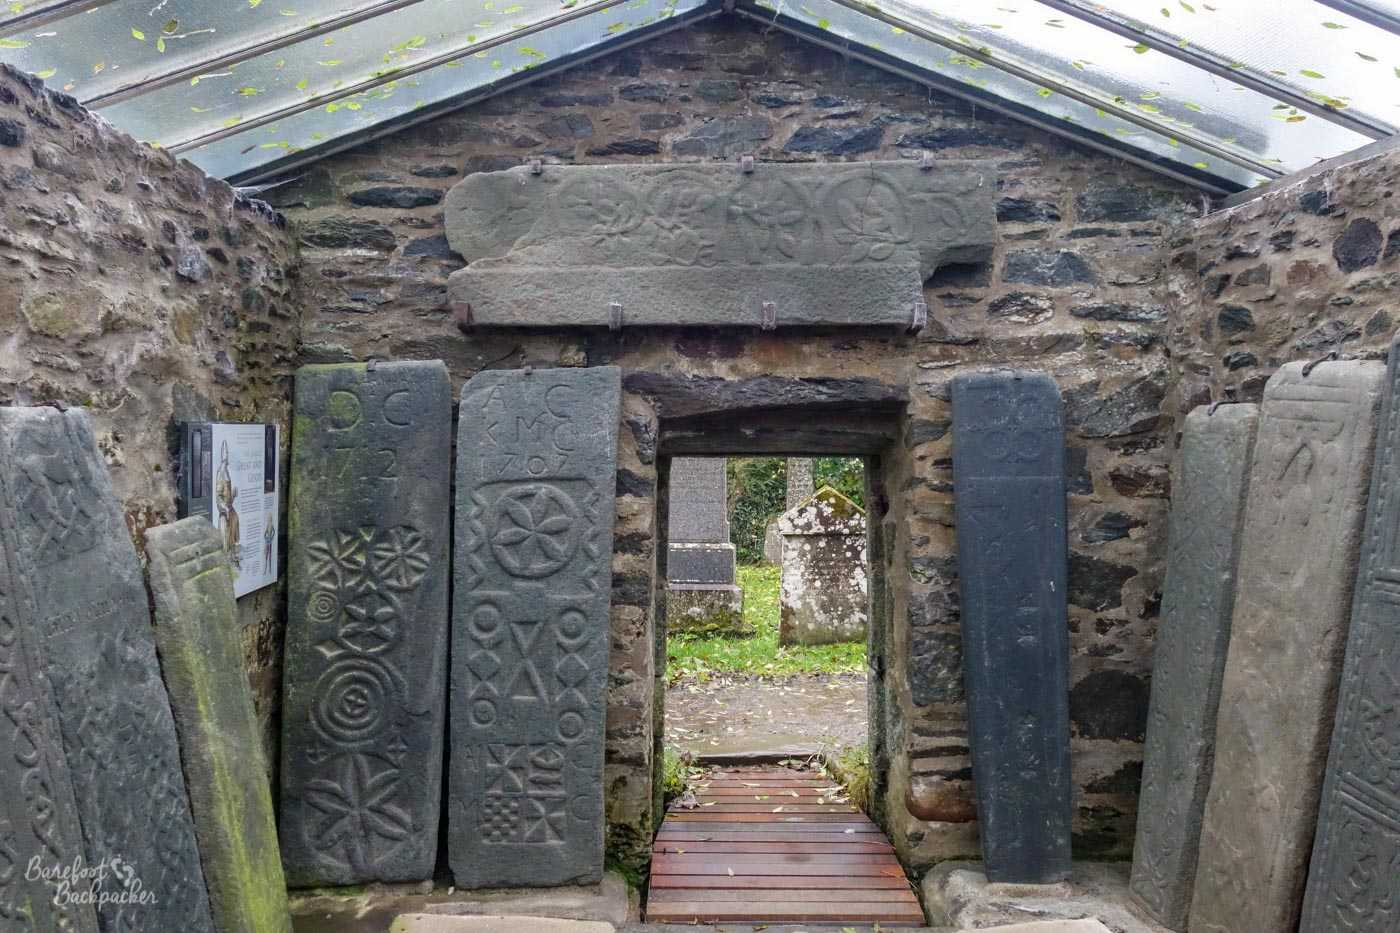 The Kilmartin Stones – a series of gravestones piled in a glorified shed in a graveyard. They have all manner of strange symbols on them.